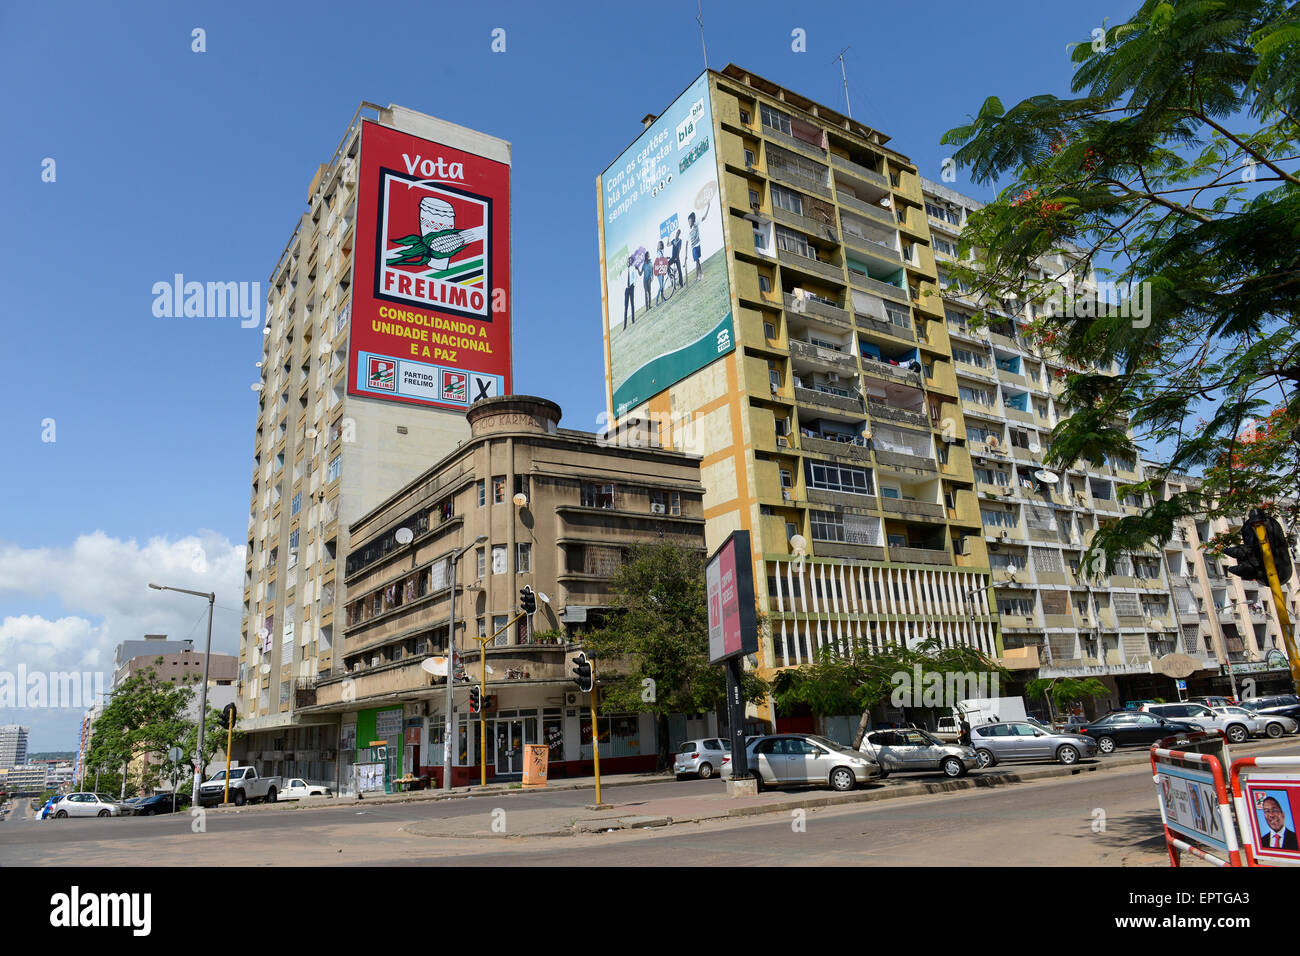 MOZAMBIQUE, Maputo, election poster for FRELIMO party , FRELIMO is the former movement for independance and today - Stock Image